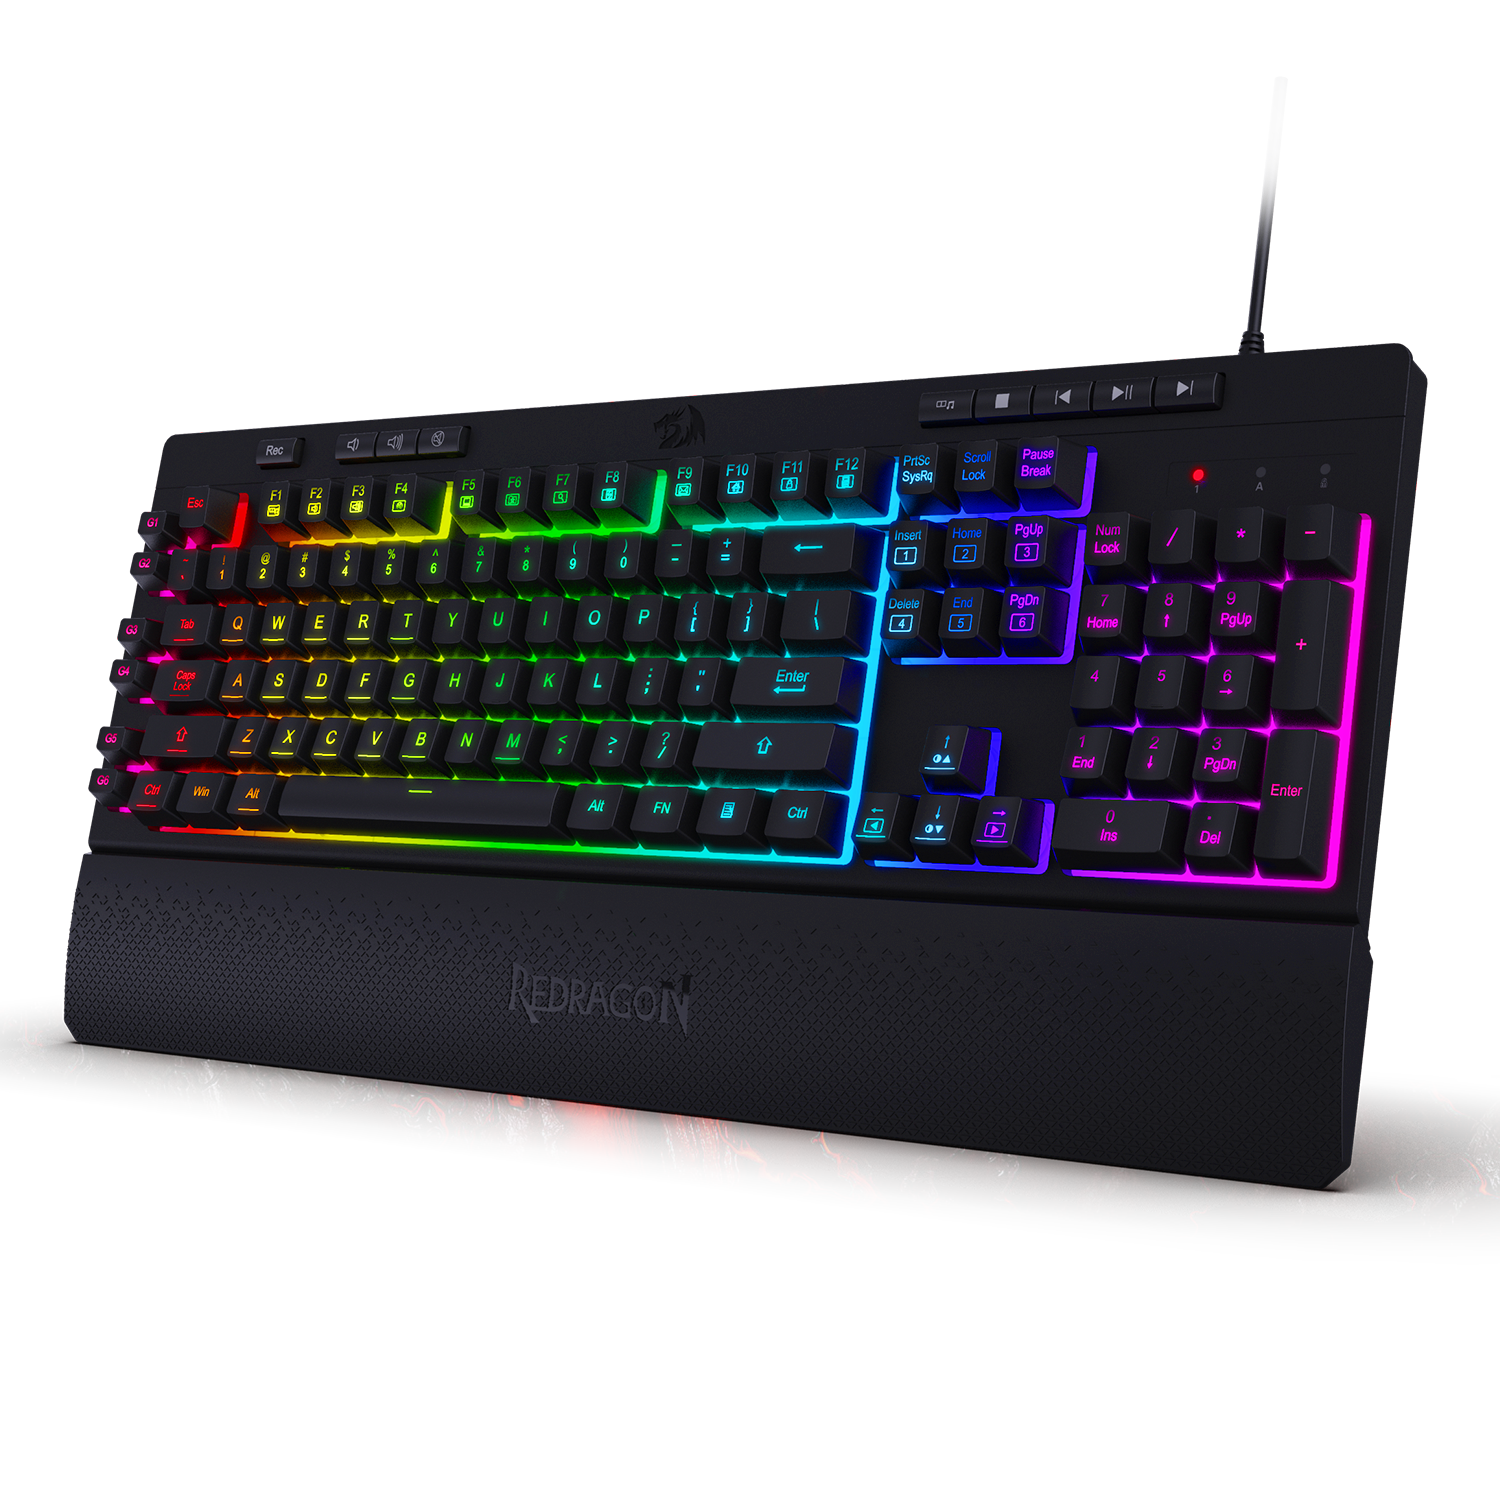 Redragon K512 Shiva RGB Backlit Membrane Gaming Keyboard With Multimedia Keys, 6 Extra On-Board Macro Keys, Media Control